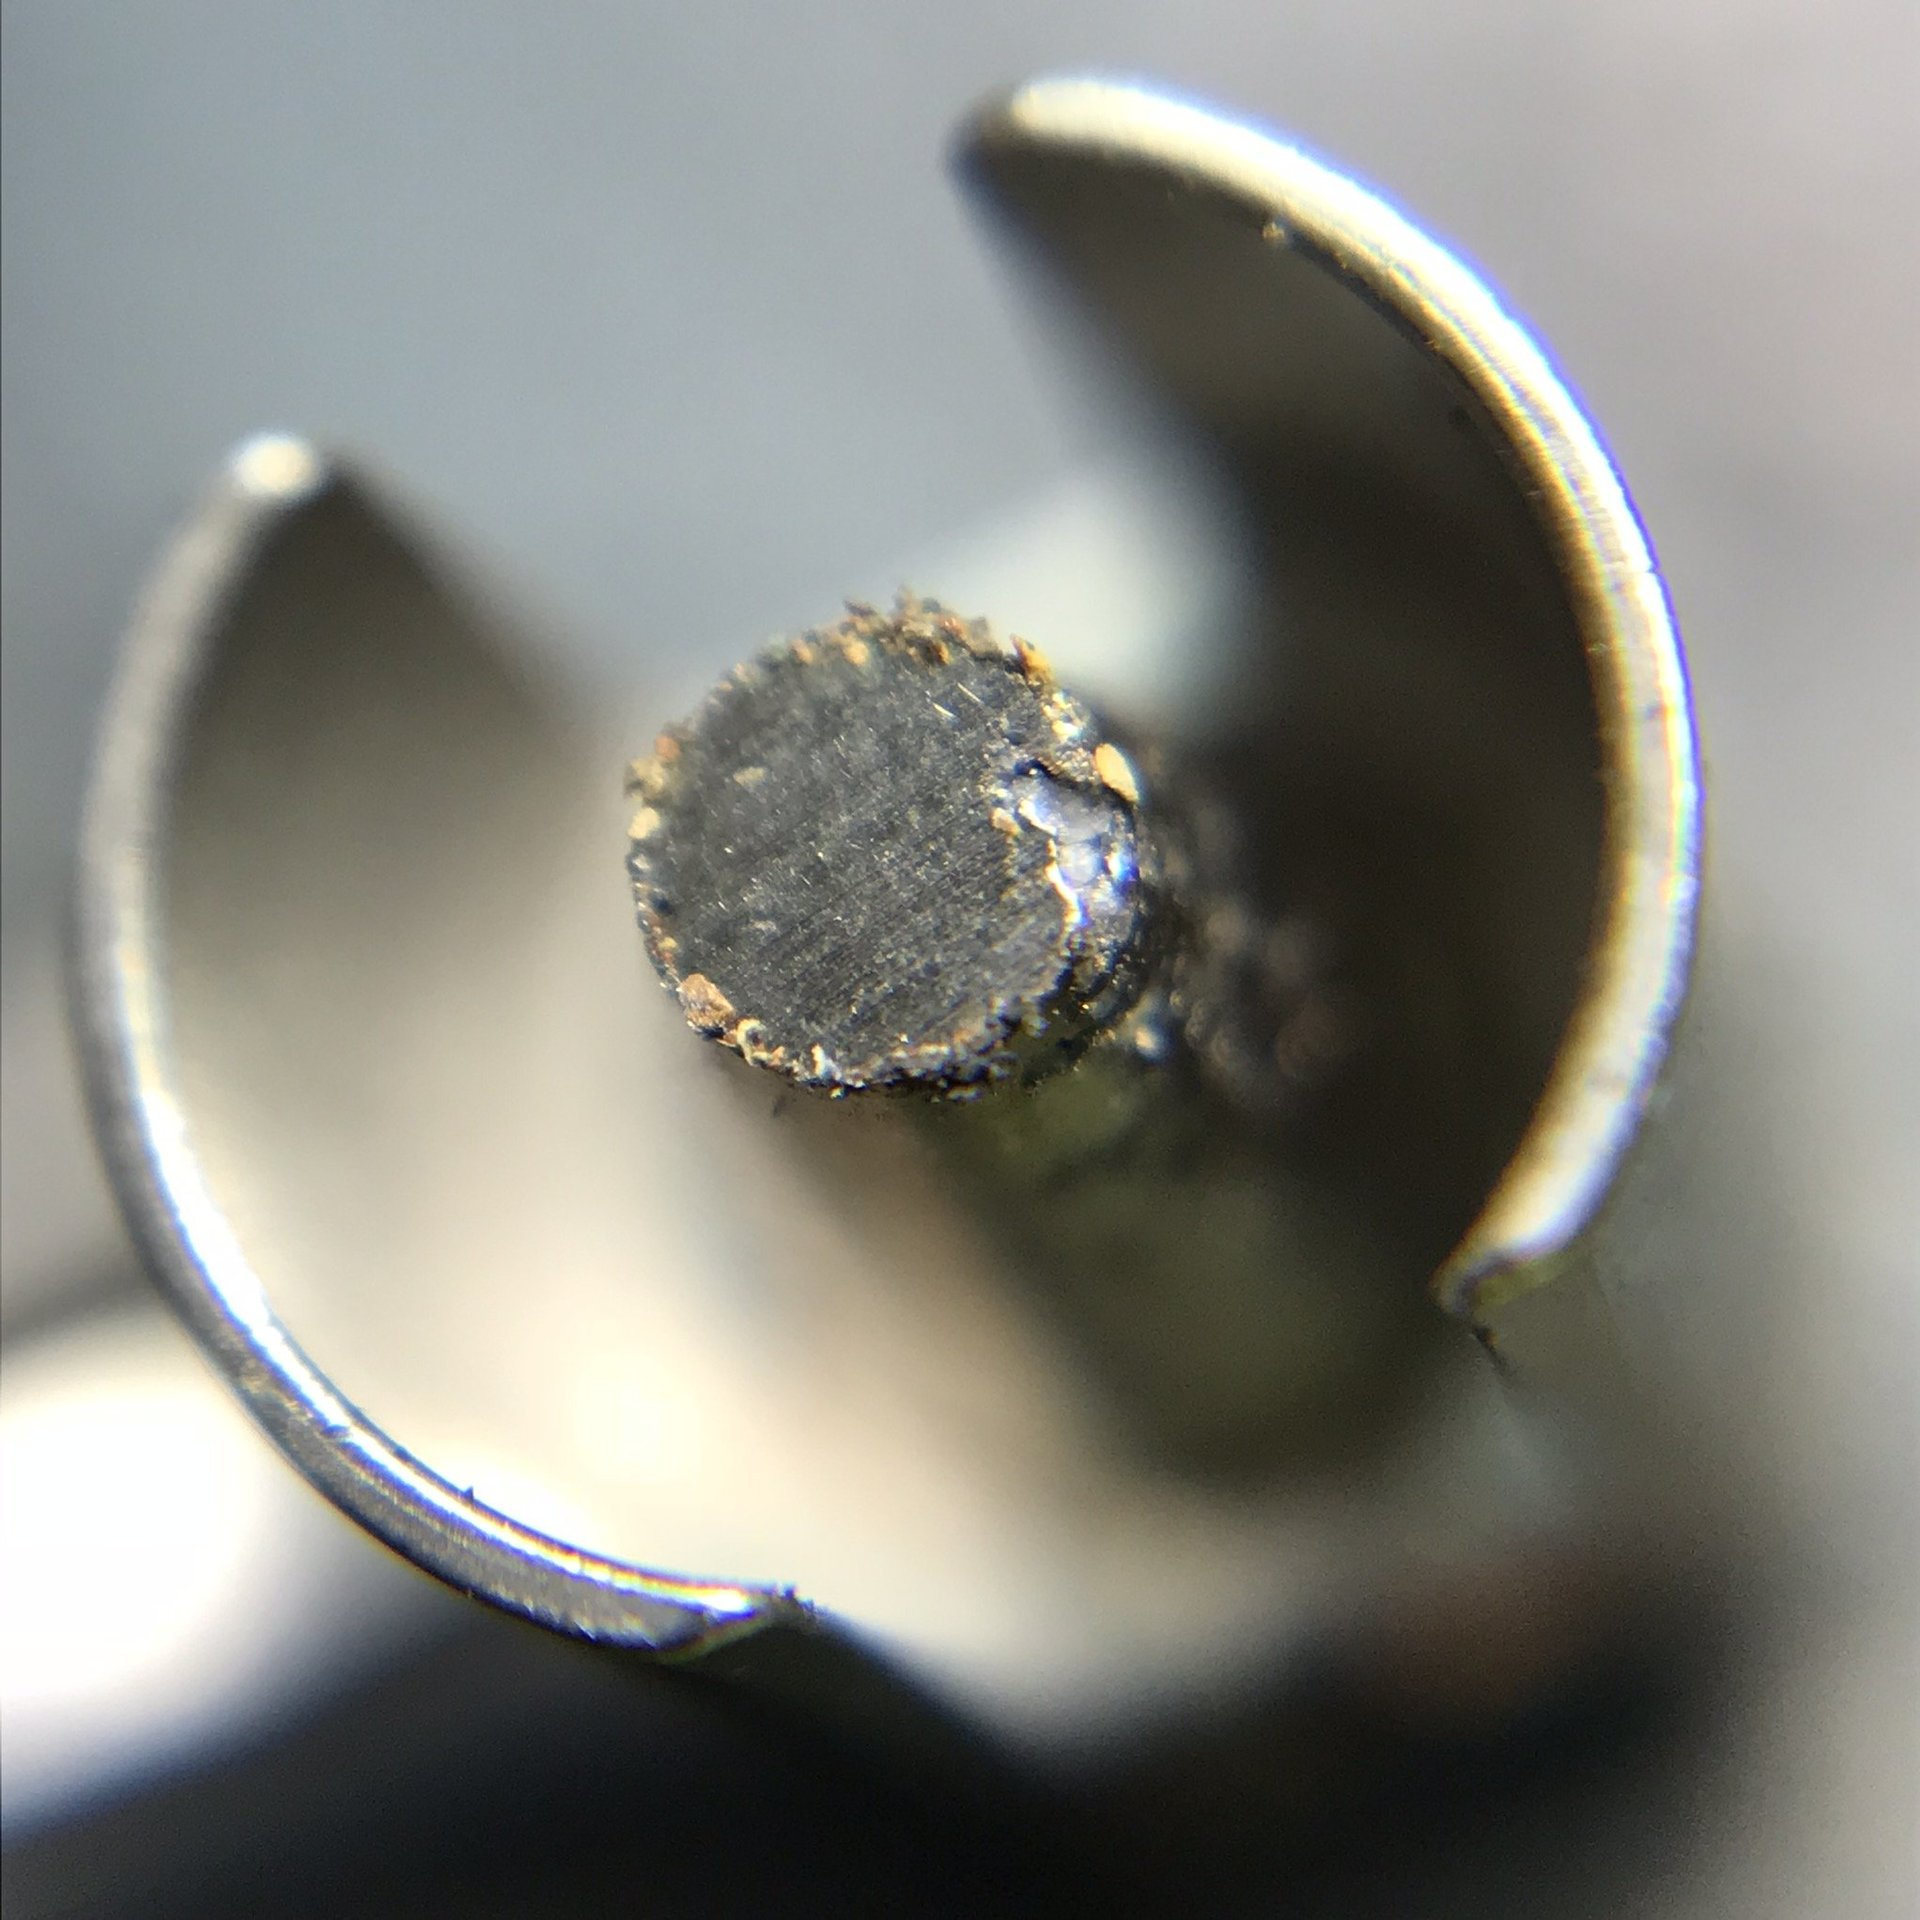 Accutron tuning fork with particles fouling them.